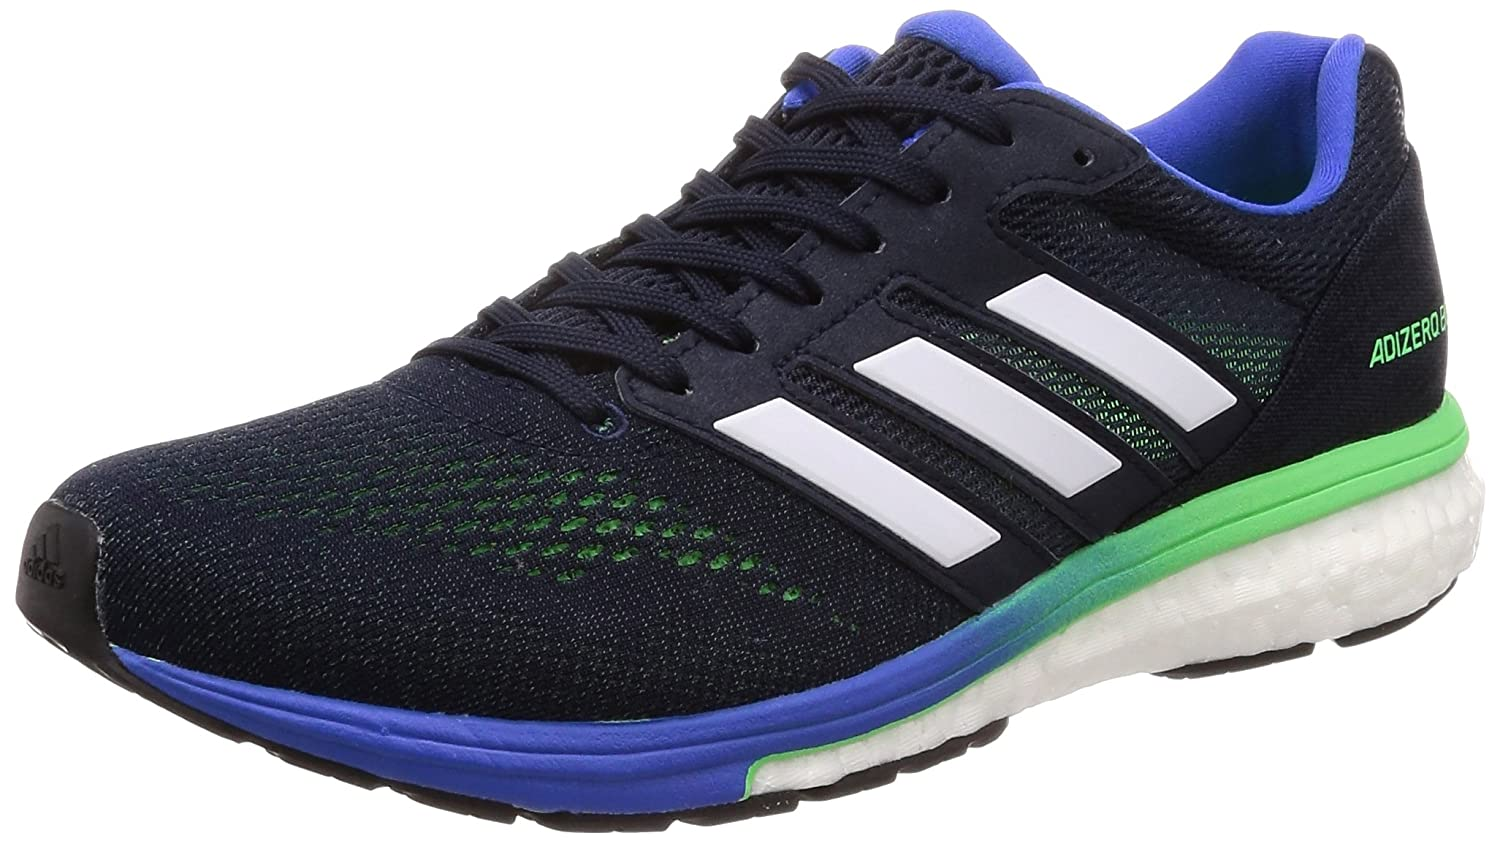 Adidas Adizero Boston 7 M, Zapatillas de Running para Hombre 42 EU|Azul (Legend Ink F17/Shock Lime F18/Hi-res Blue S18)